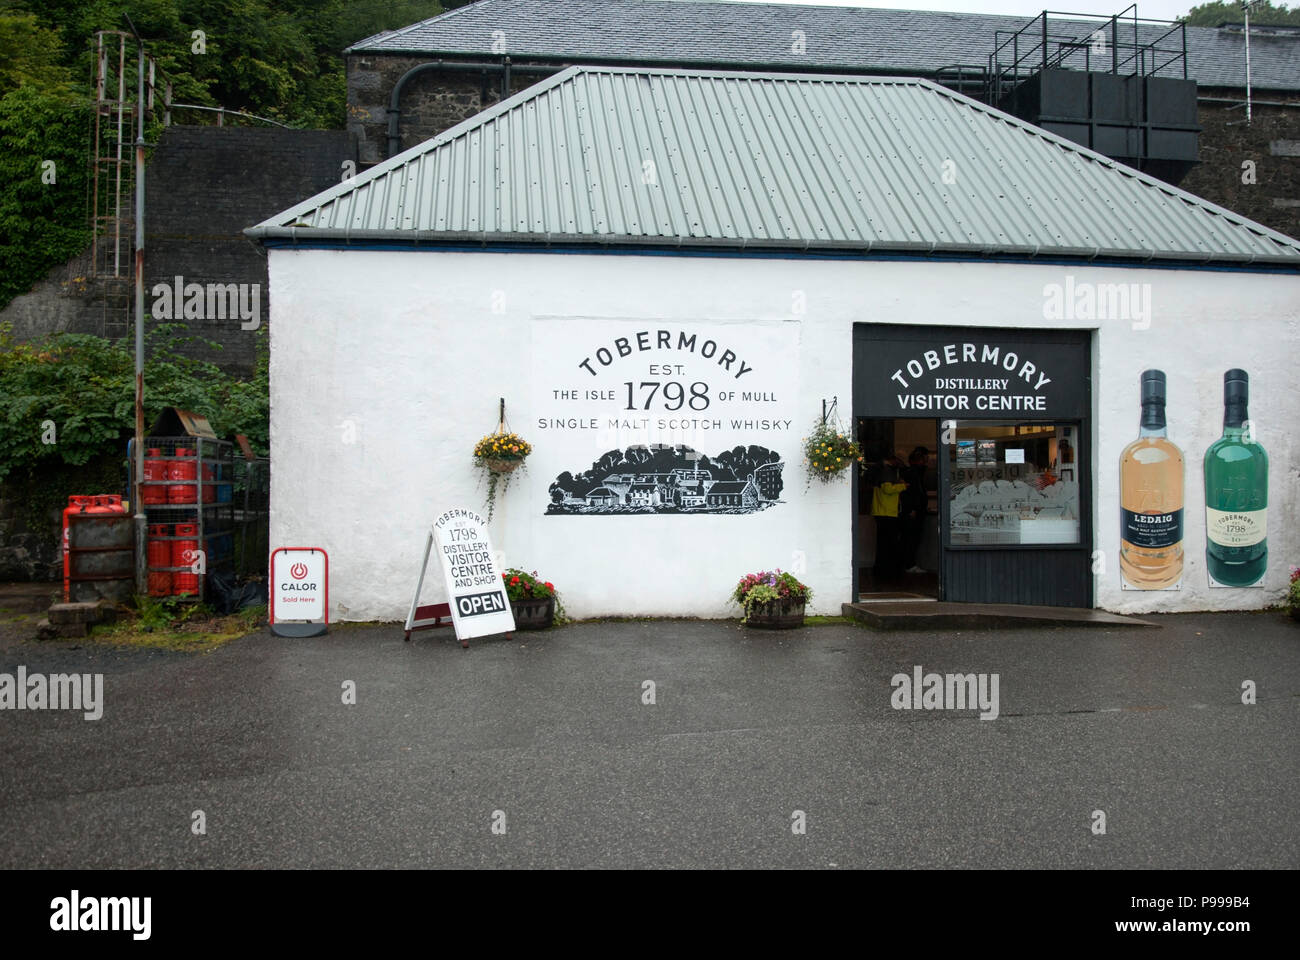 Tobermory Island Single Malt Whisky Distillery Isle of Mull Scotland exterior view of white painted premises building and entrance to 1798 tobermory d Stock Photo